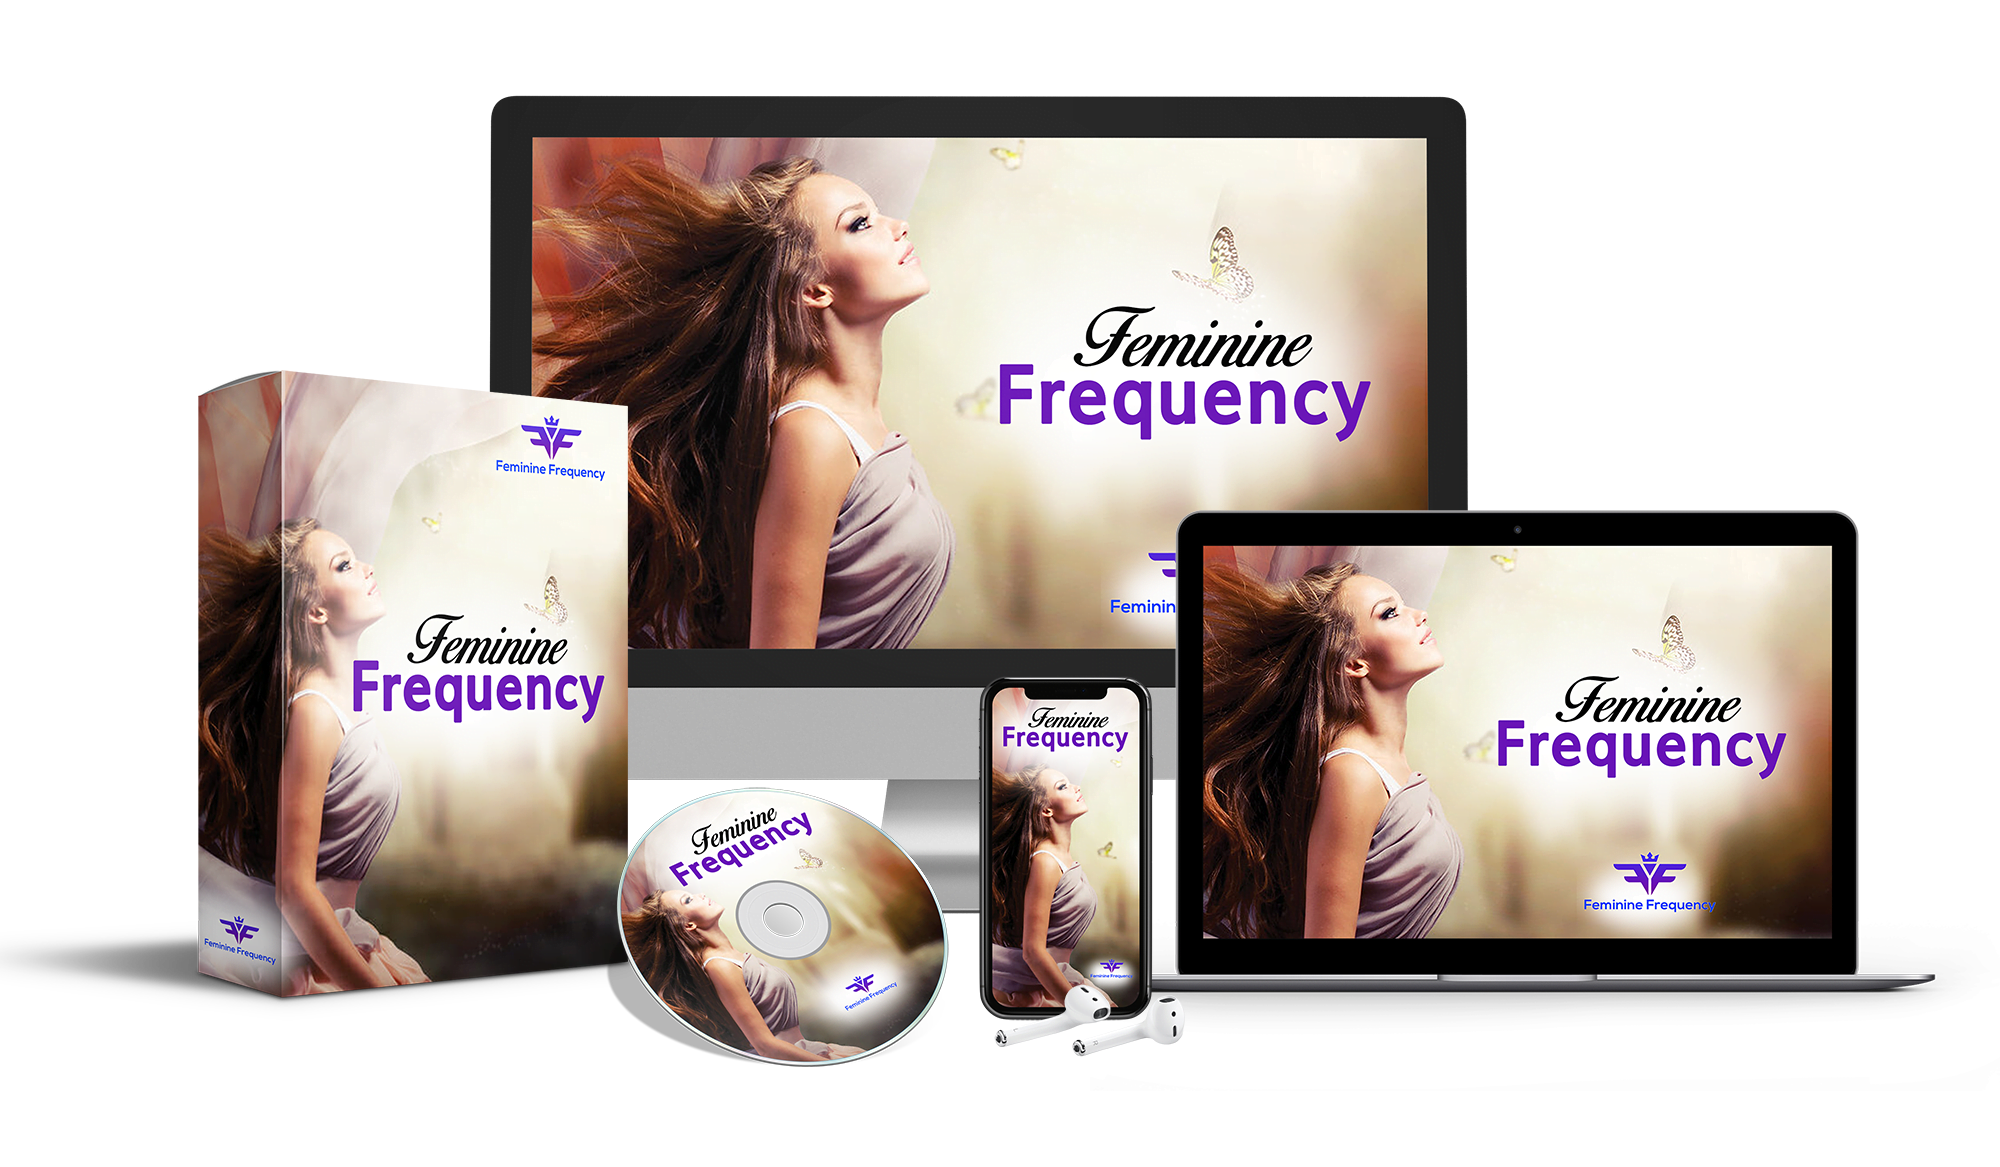 Feminine Frequency Review